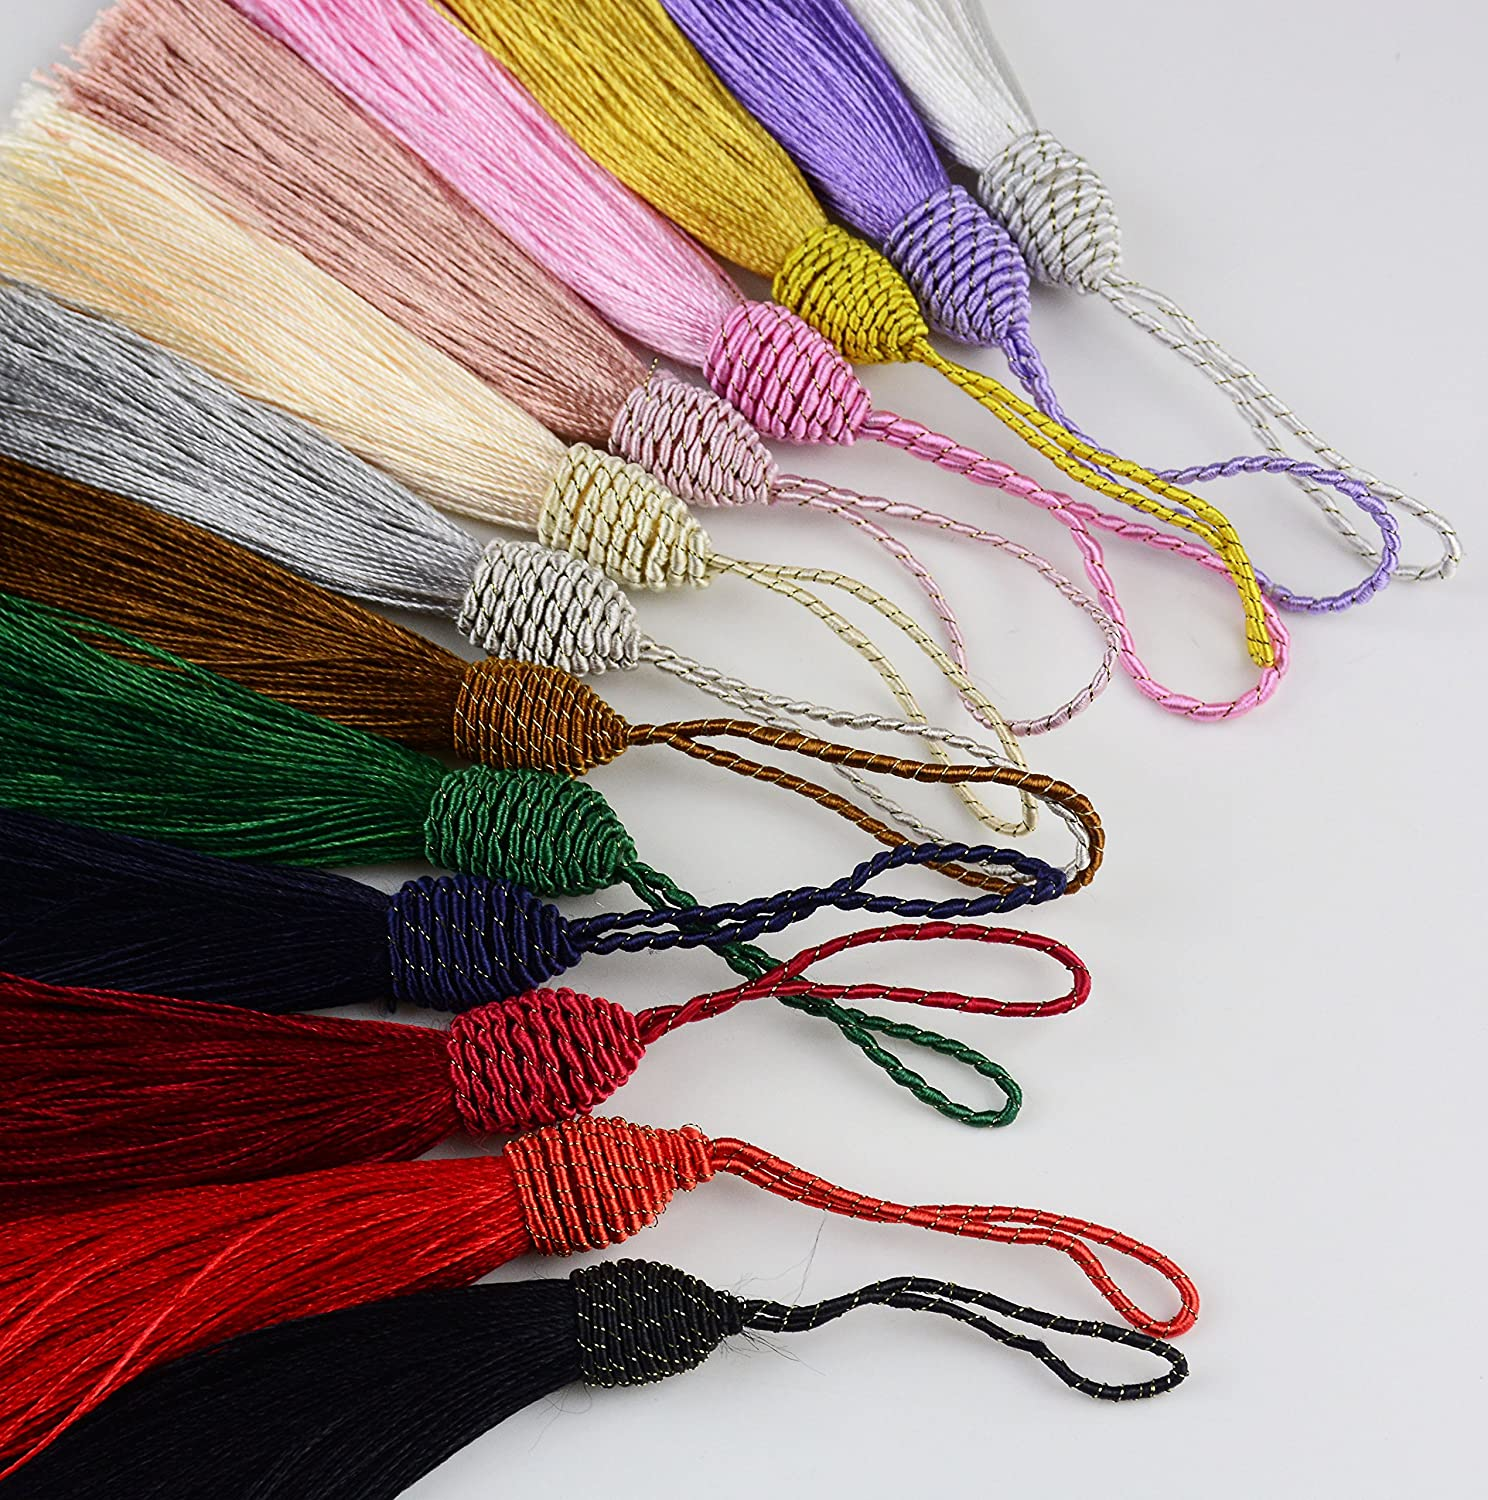 Makhry 52pcs 15.5cm//6 Inch Silky Floss bookmark Tassels with 2-Inch Cord Loop and Small Chinese Knot for Jewelry Making Mixed 13 Colors DIY Craft Accessory Bookmarks Souvenir